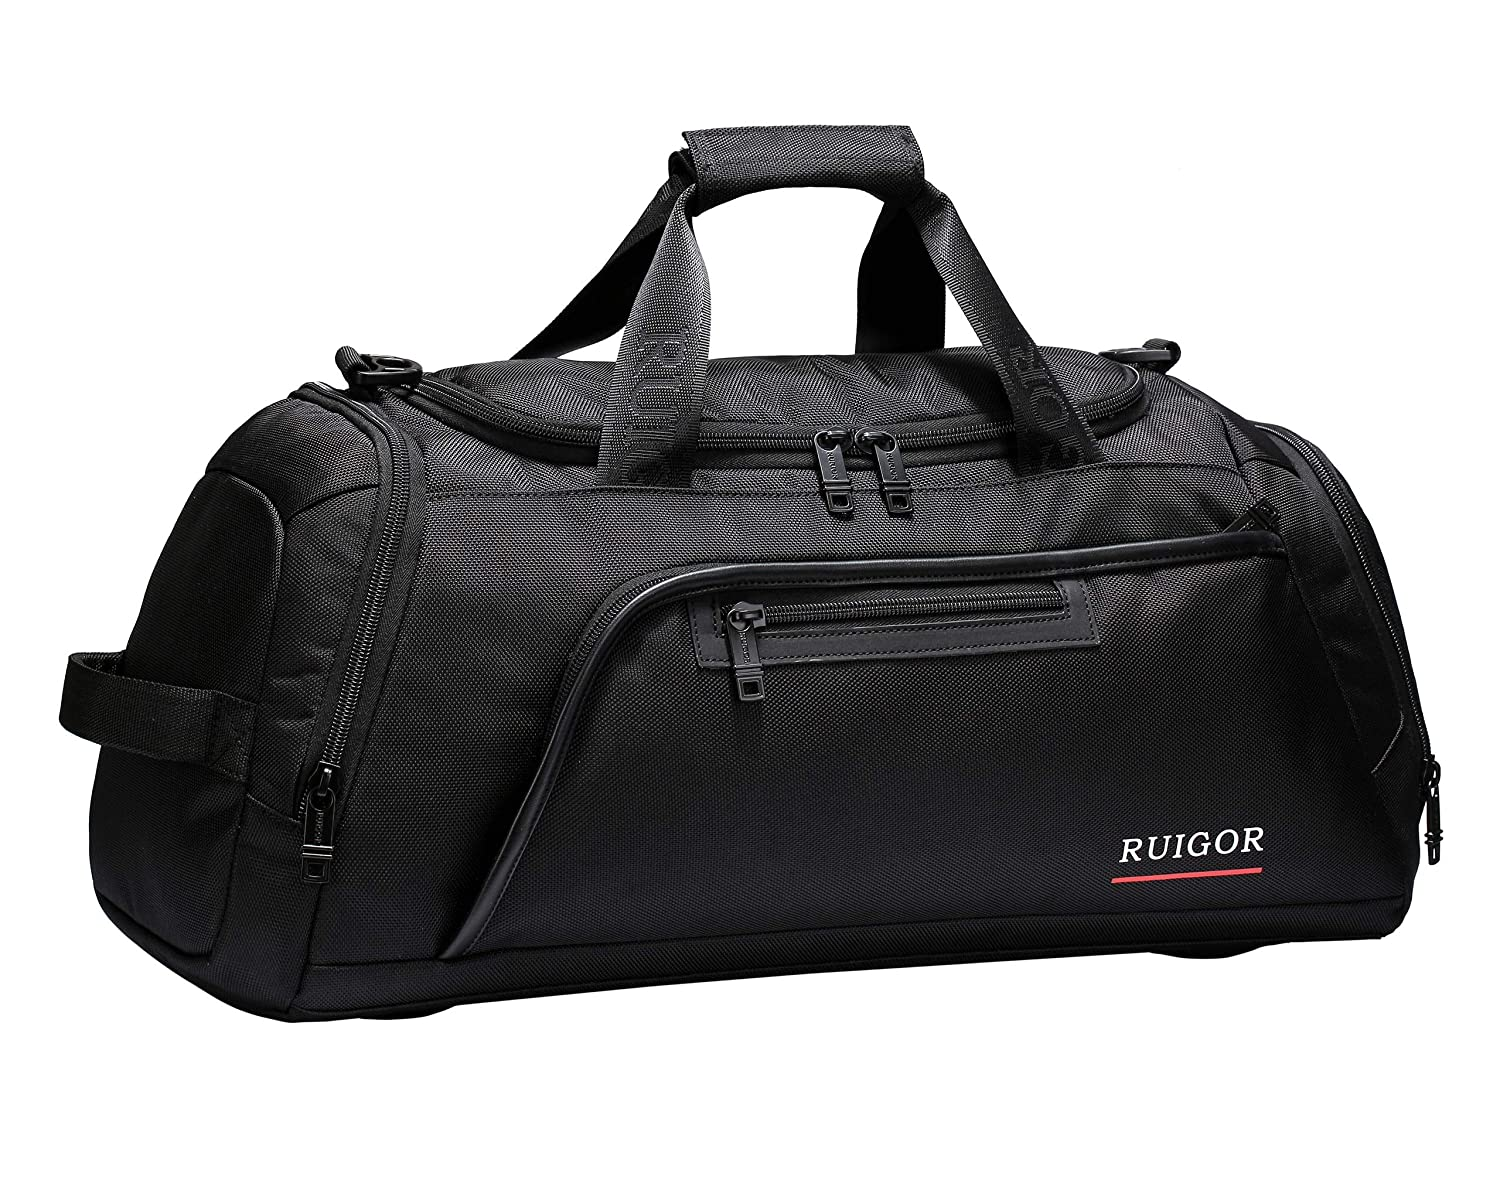 f241065490bbfb Amazon.com: Sport Gym Duffel Bag with Sweat Control Shoe Compartment, Water  Resistant, Large Sports Duffle Motion 32 Large by Swiss RUIGOR - Black: ...